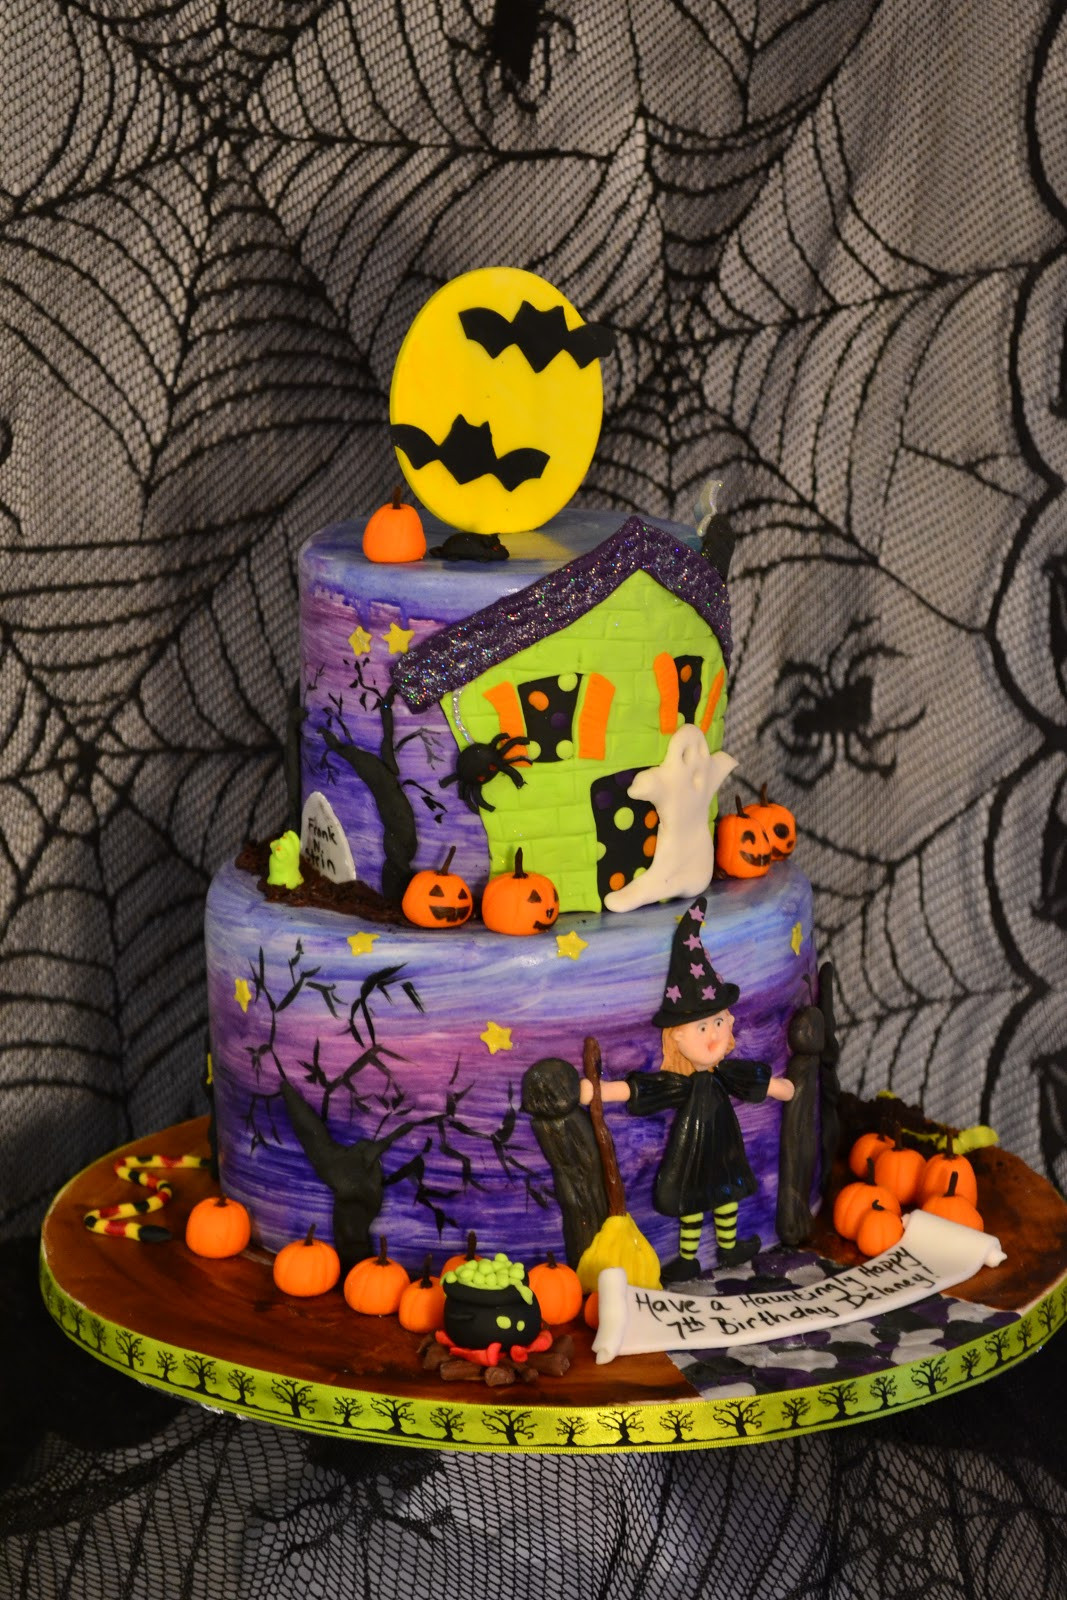 Halloween Bday Cakes  Oh just put a cupcake in it Halloween birthday cake